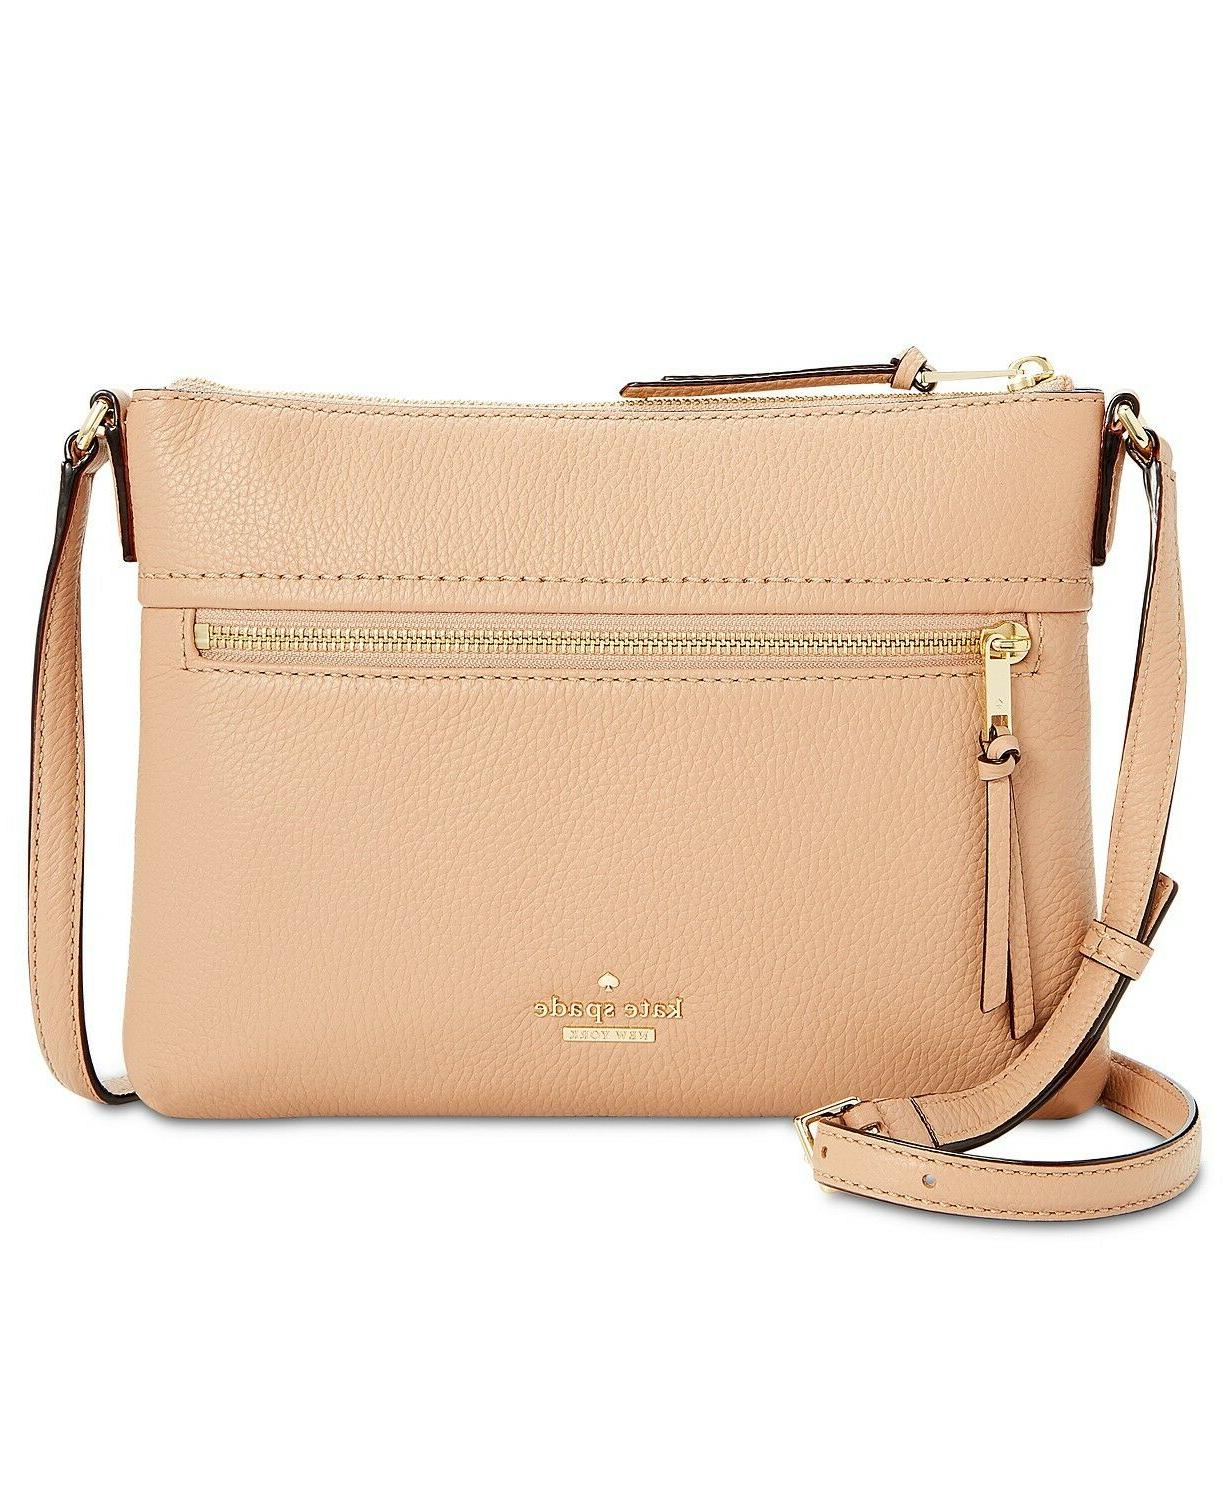 New kate spade new york Jackson Street Gabriele Crossbody Le